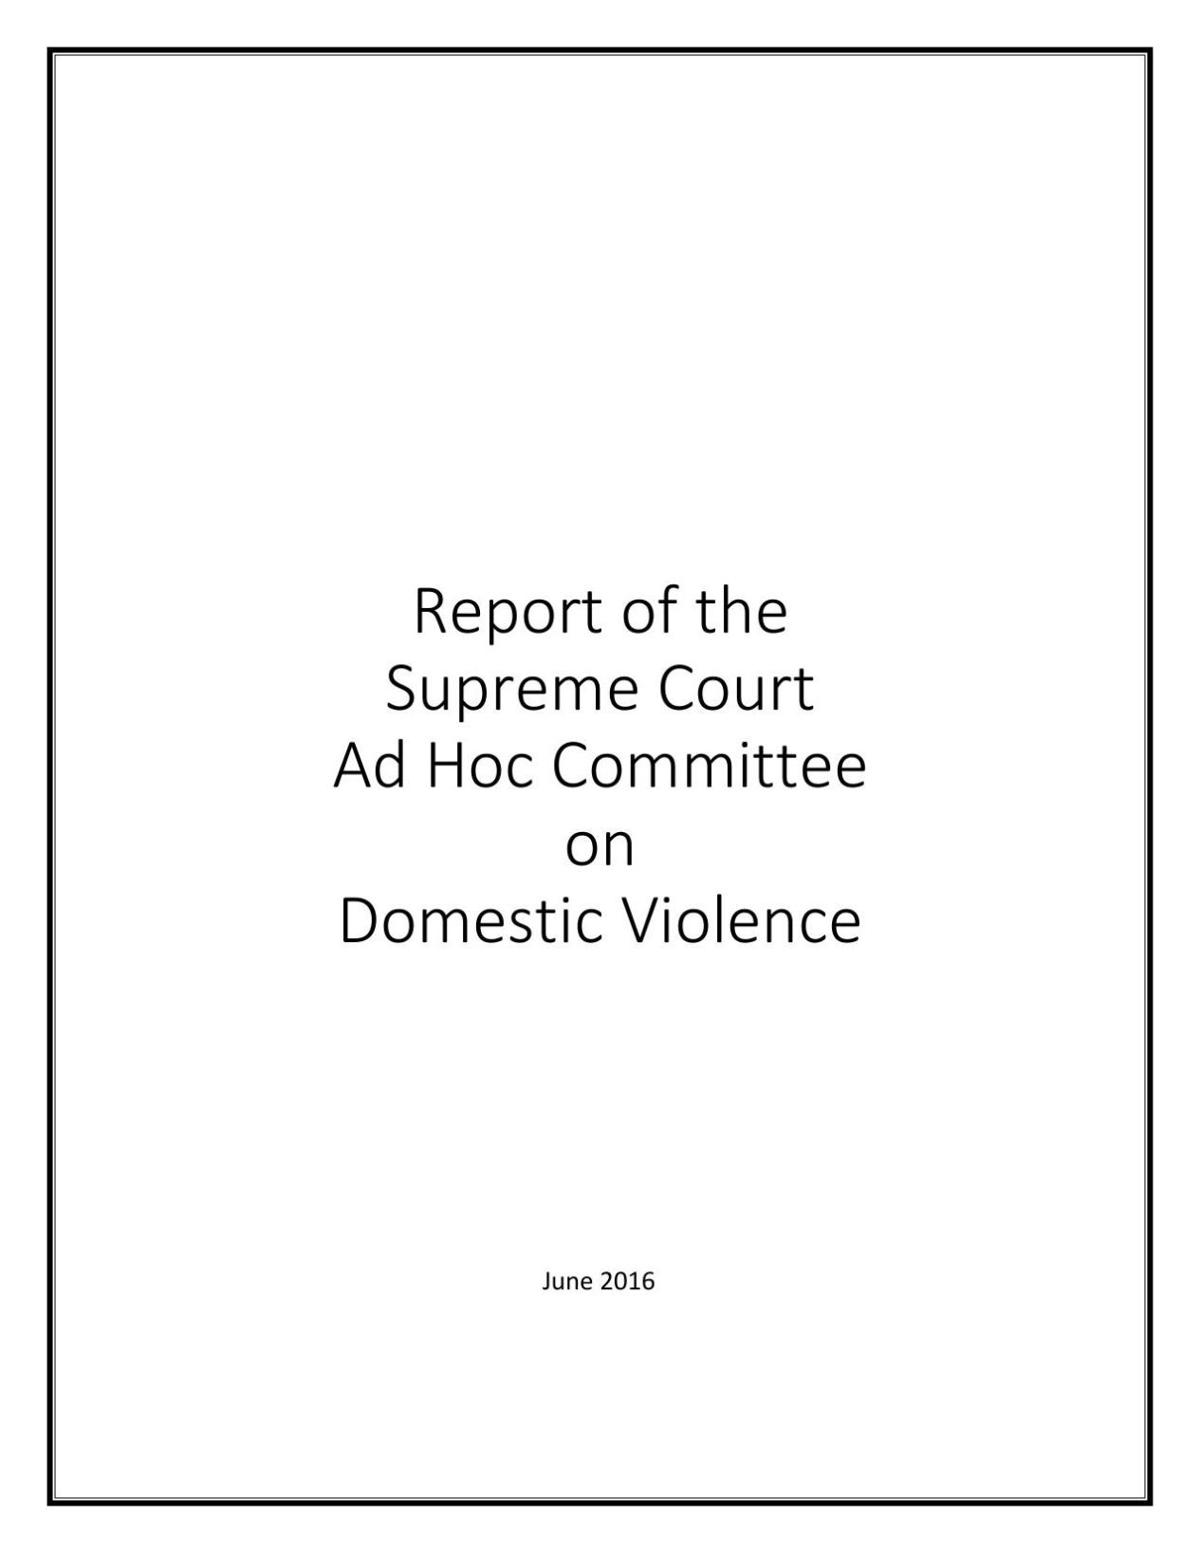 Report of the Supreme Court Ad Hoc Committee on Domestic Violence